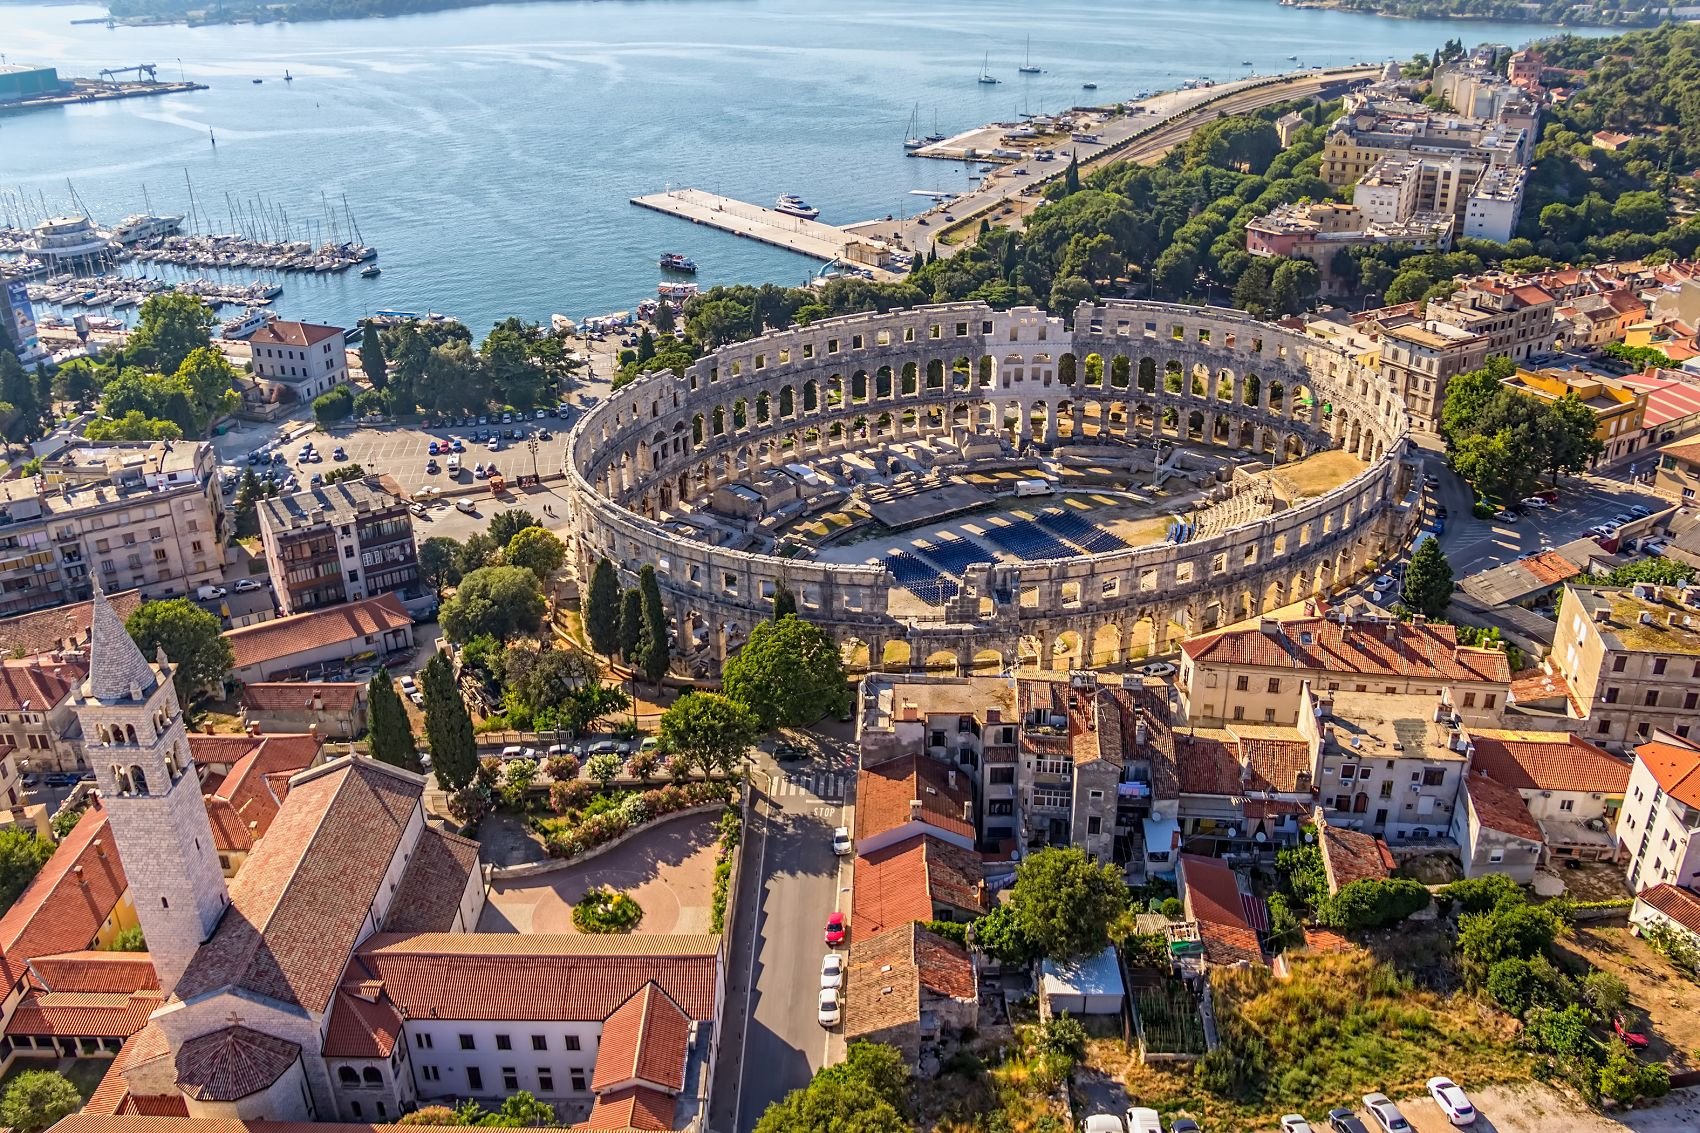 Pula colosseum Croatia tour